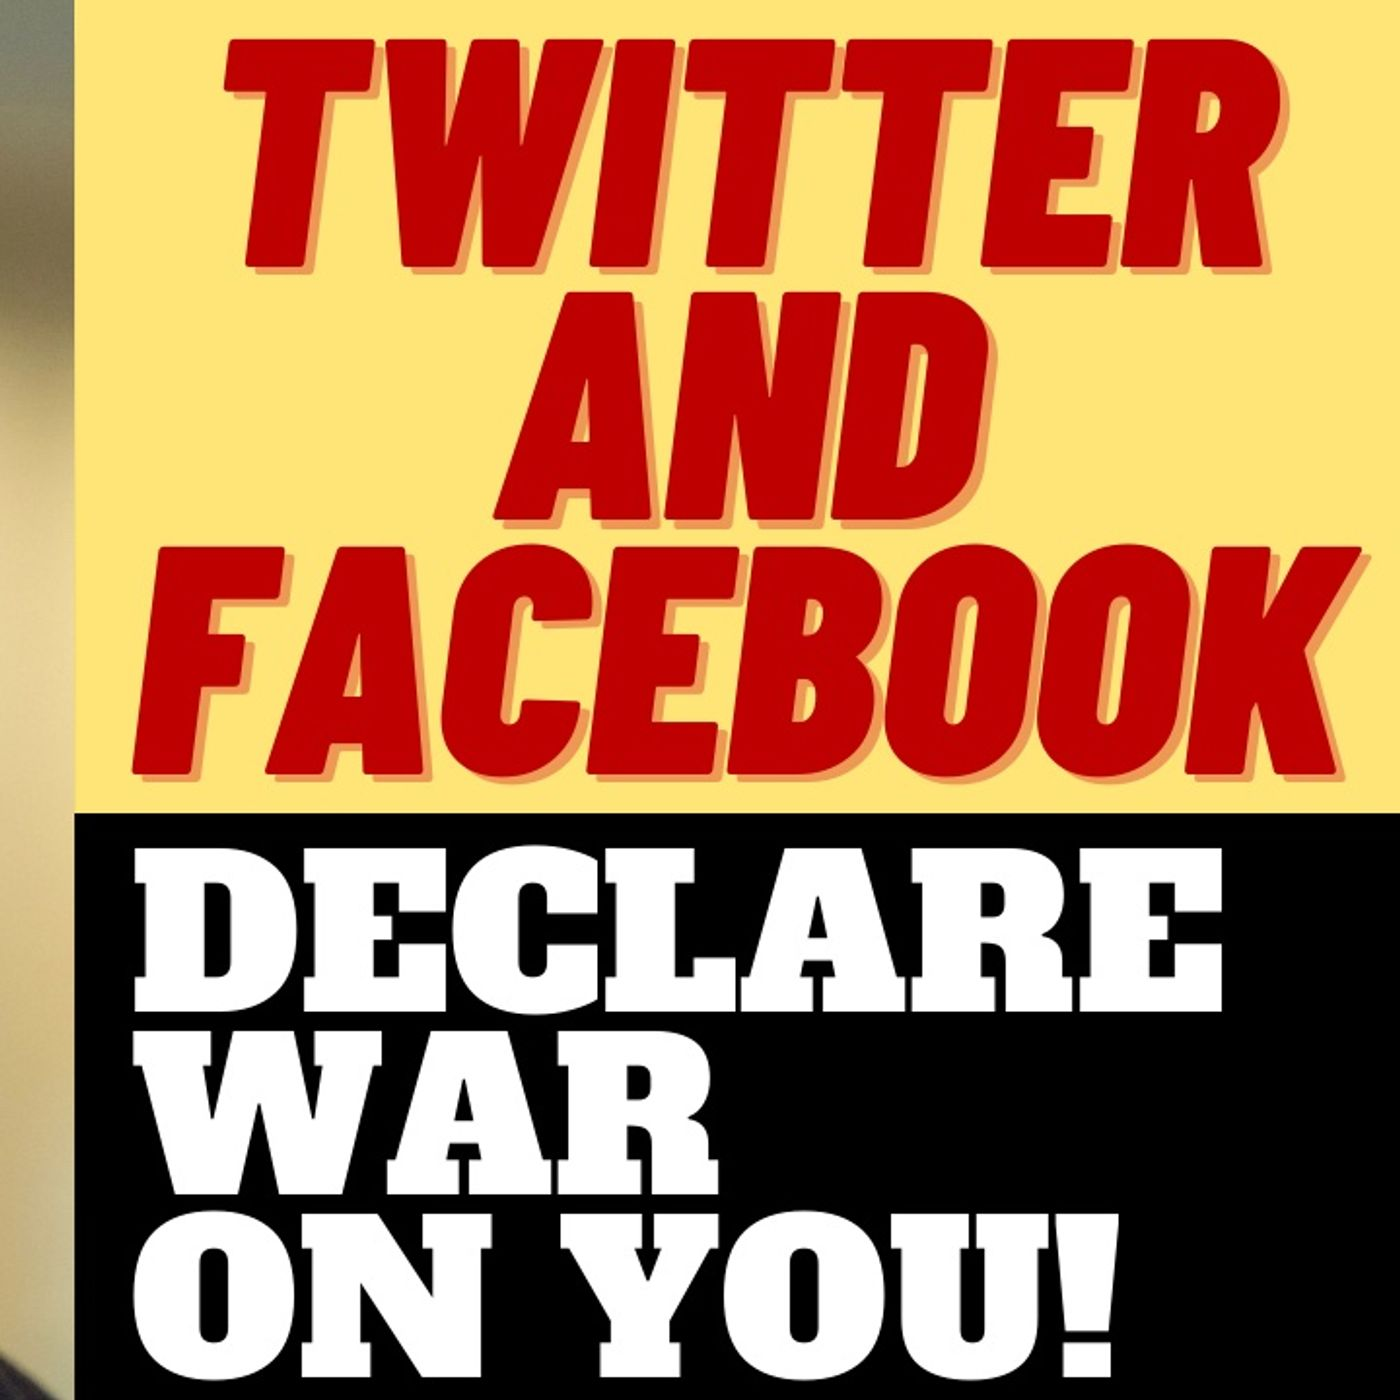 TWITTER AND FACEBOOK DECLARE WAR ON YOU